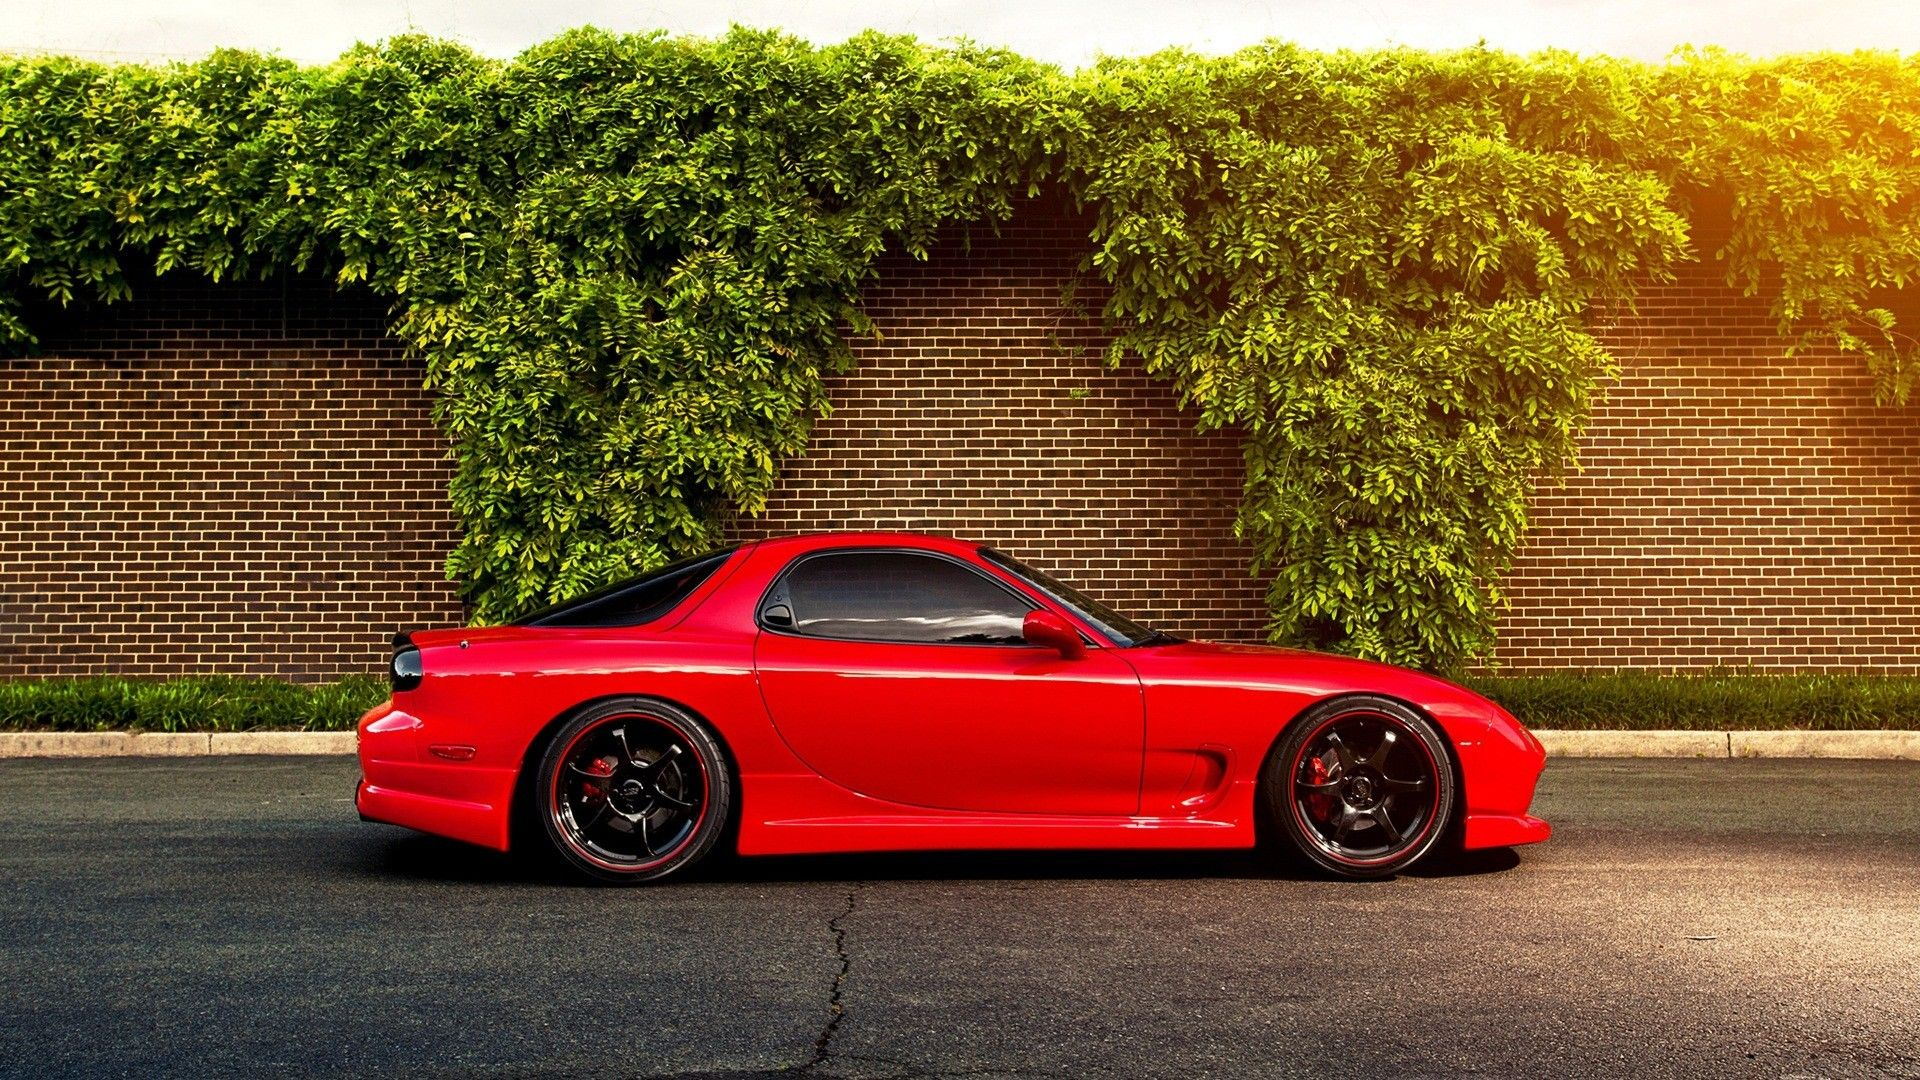 JDM Japanese Domestic Market Mazda Mazda RX7 Cars Red